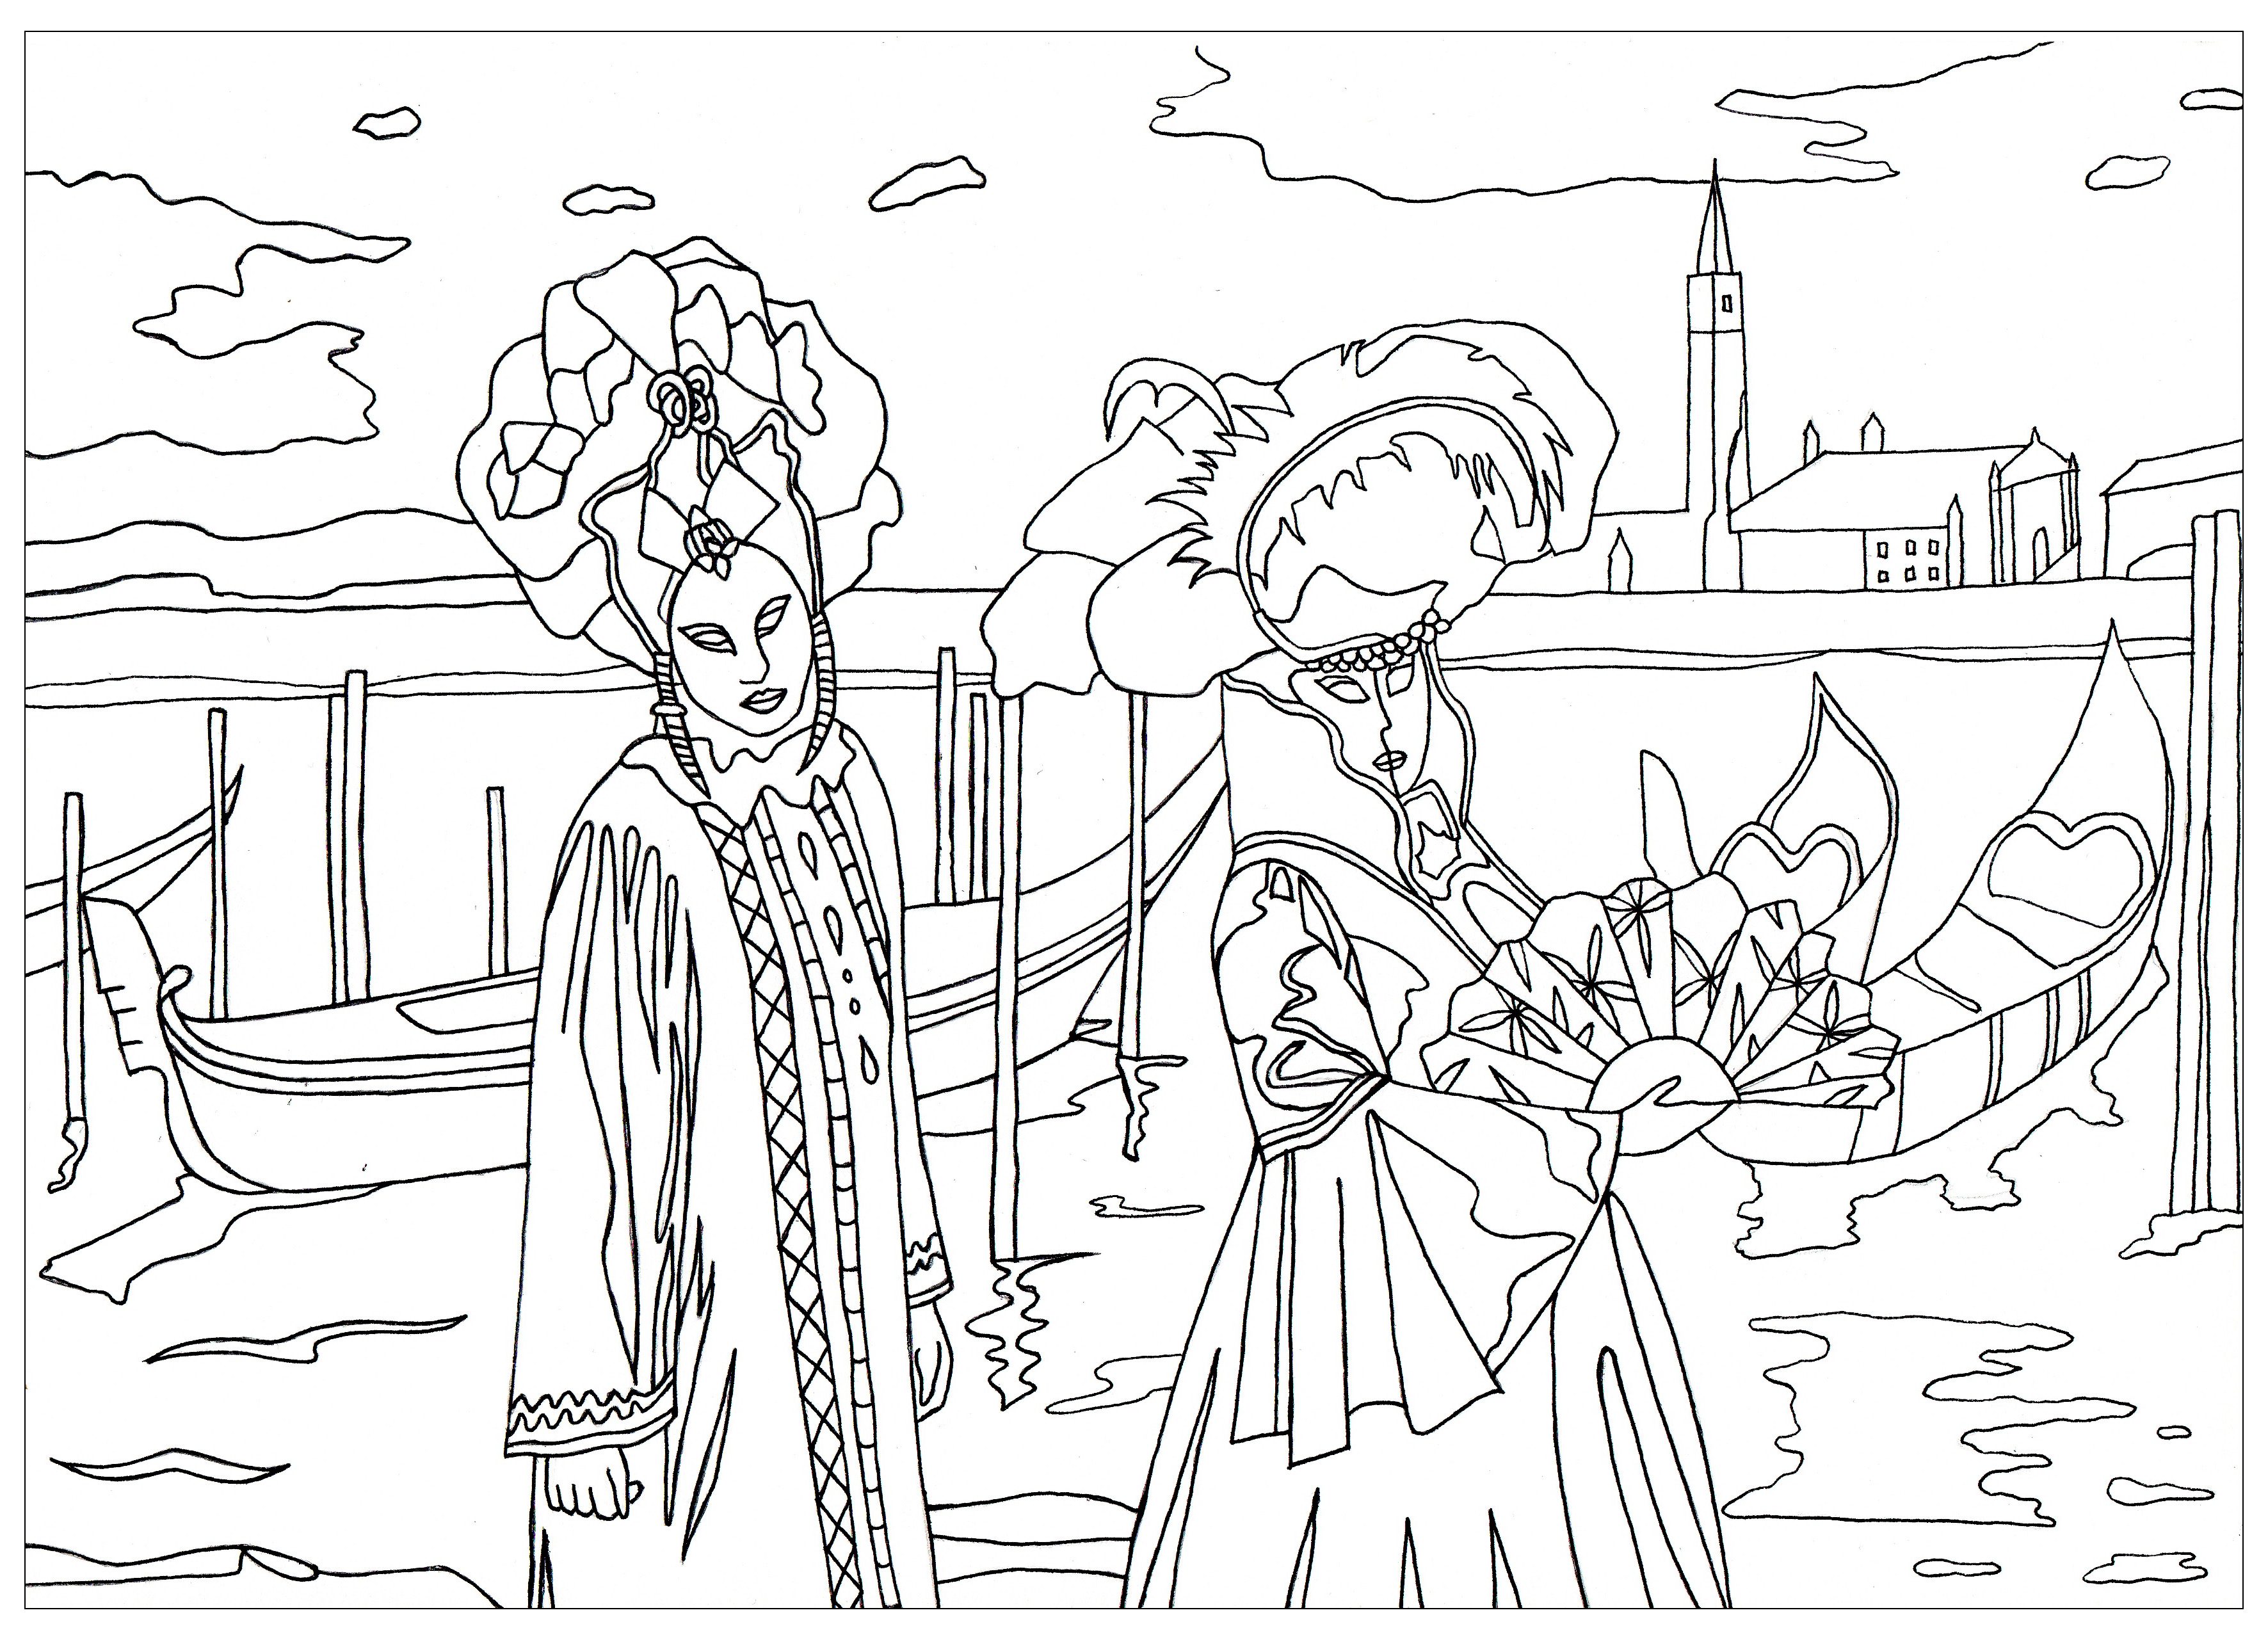 Adult coloring page to download